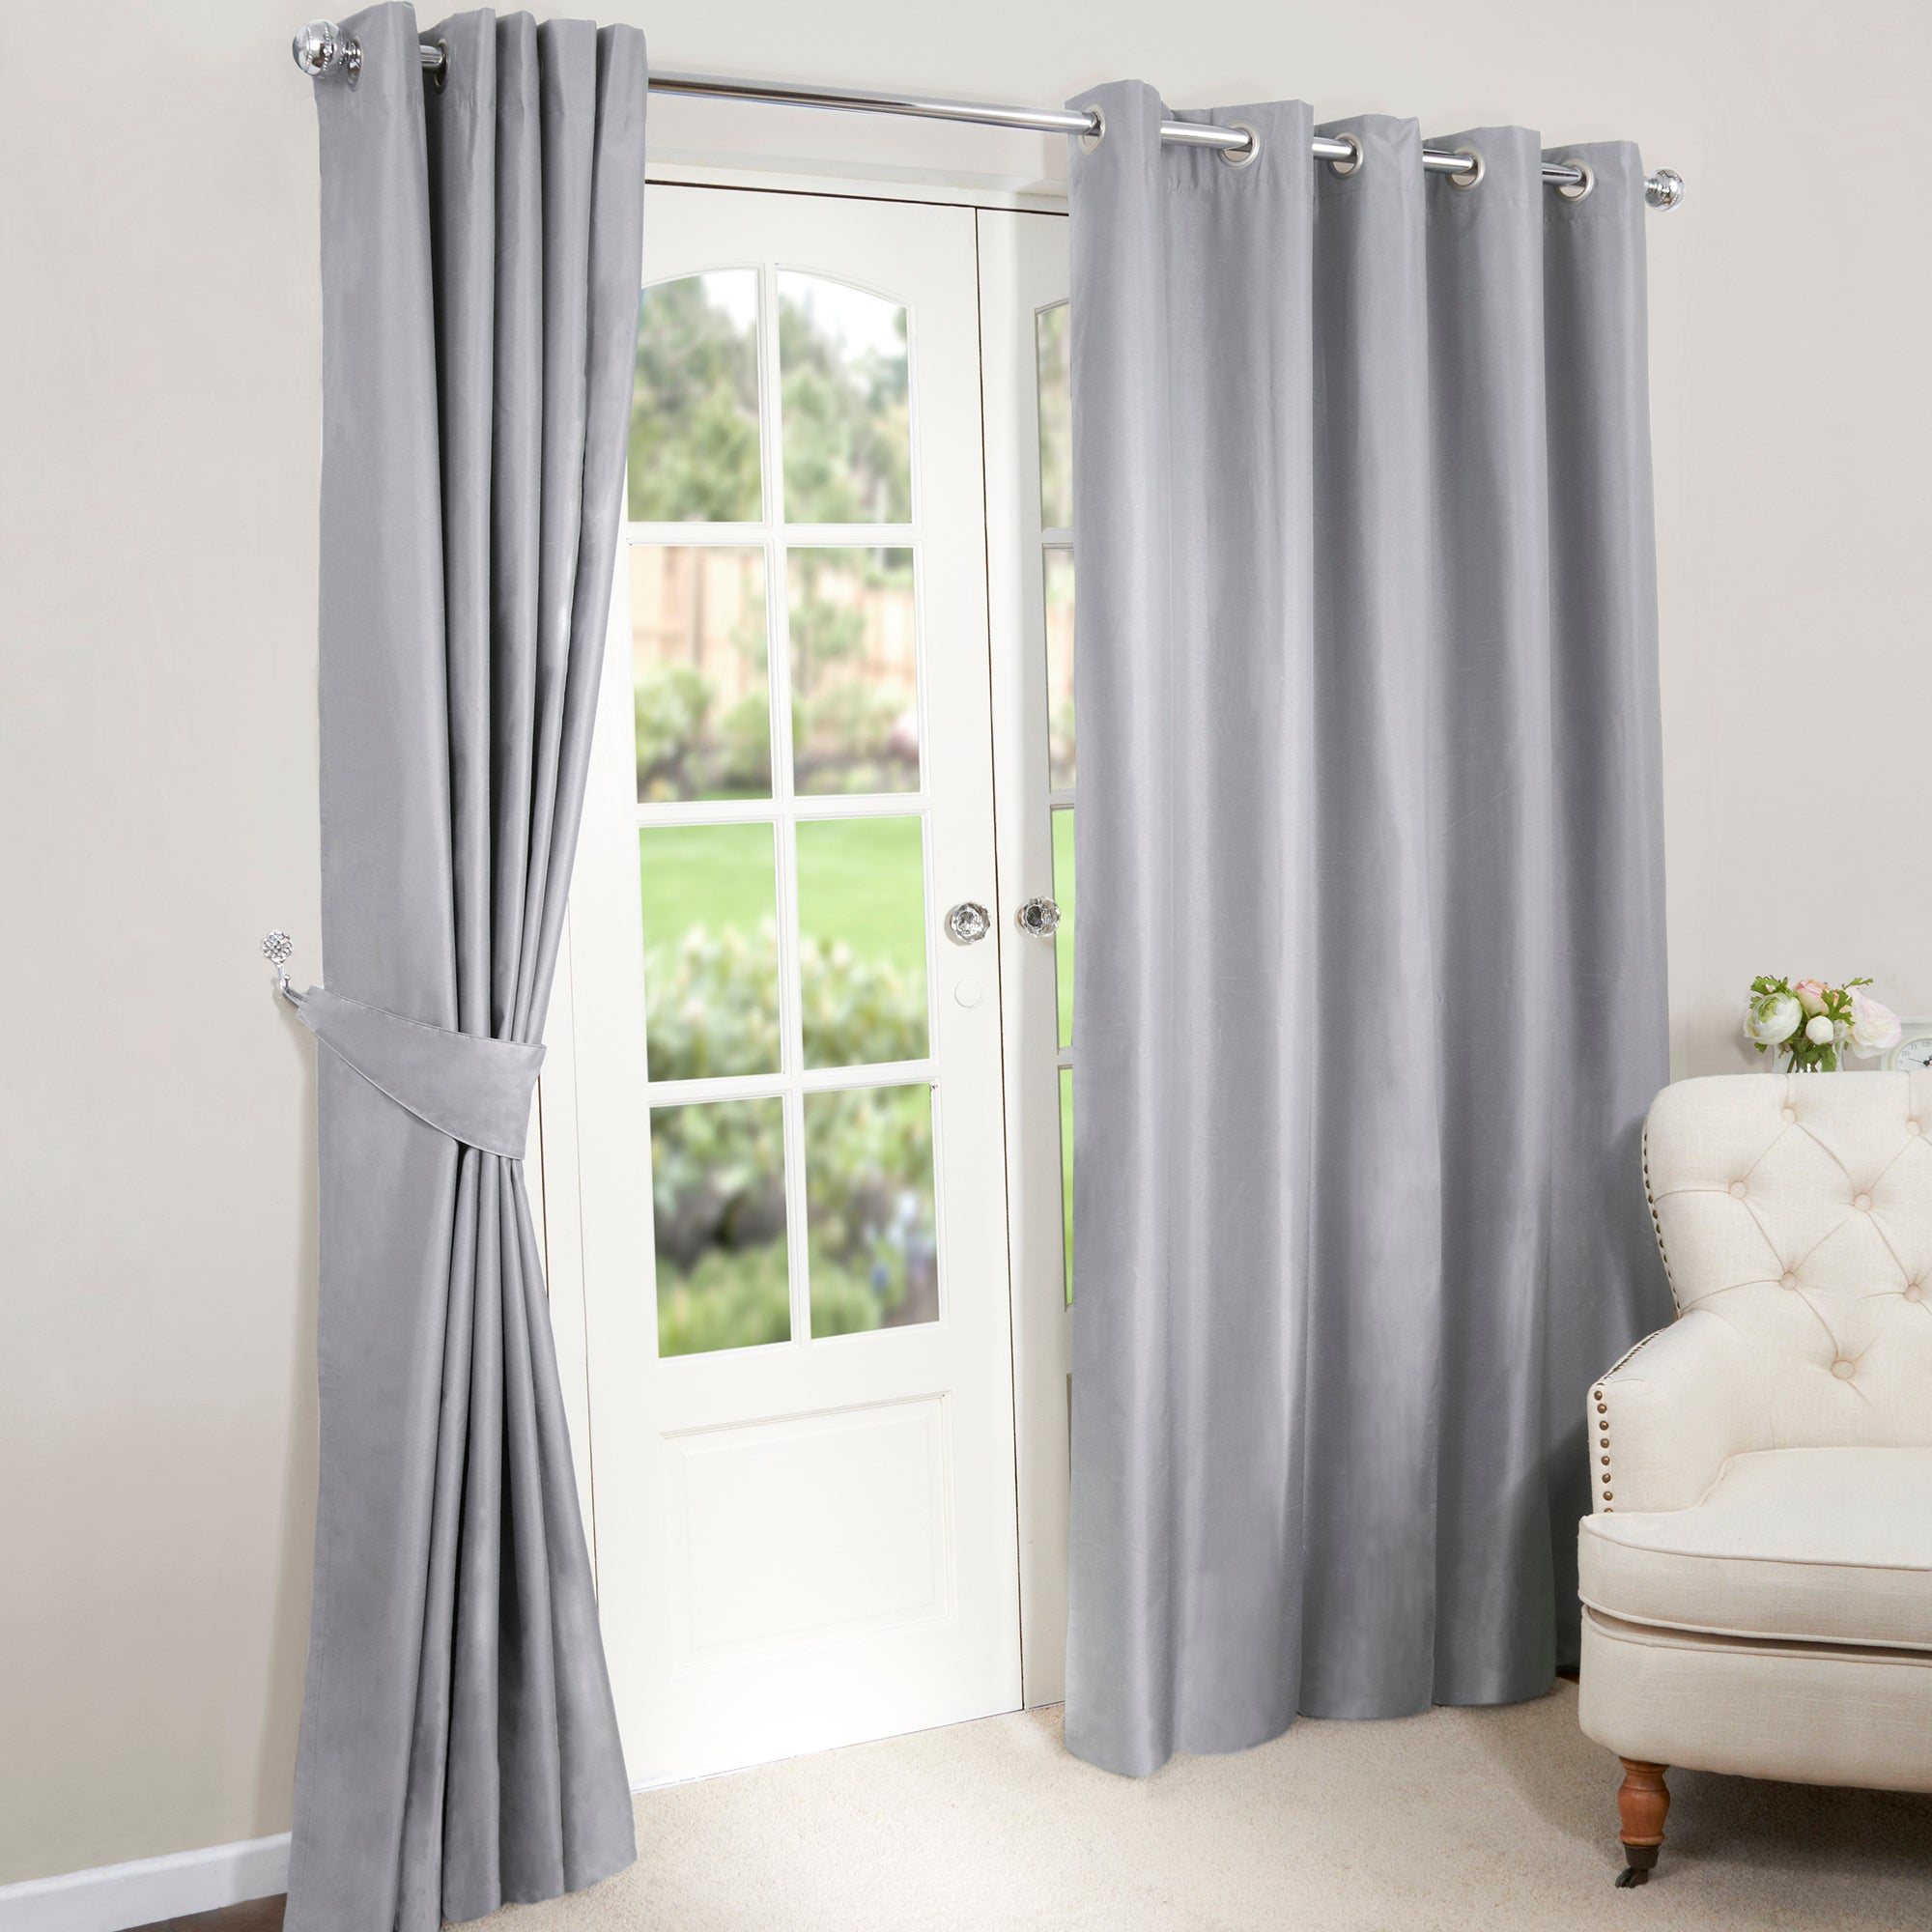 Silver Nova Blackout Lined Eyelet Curtains